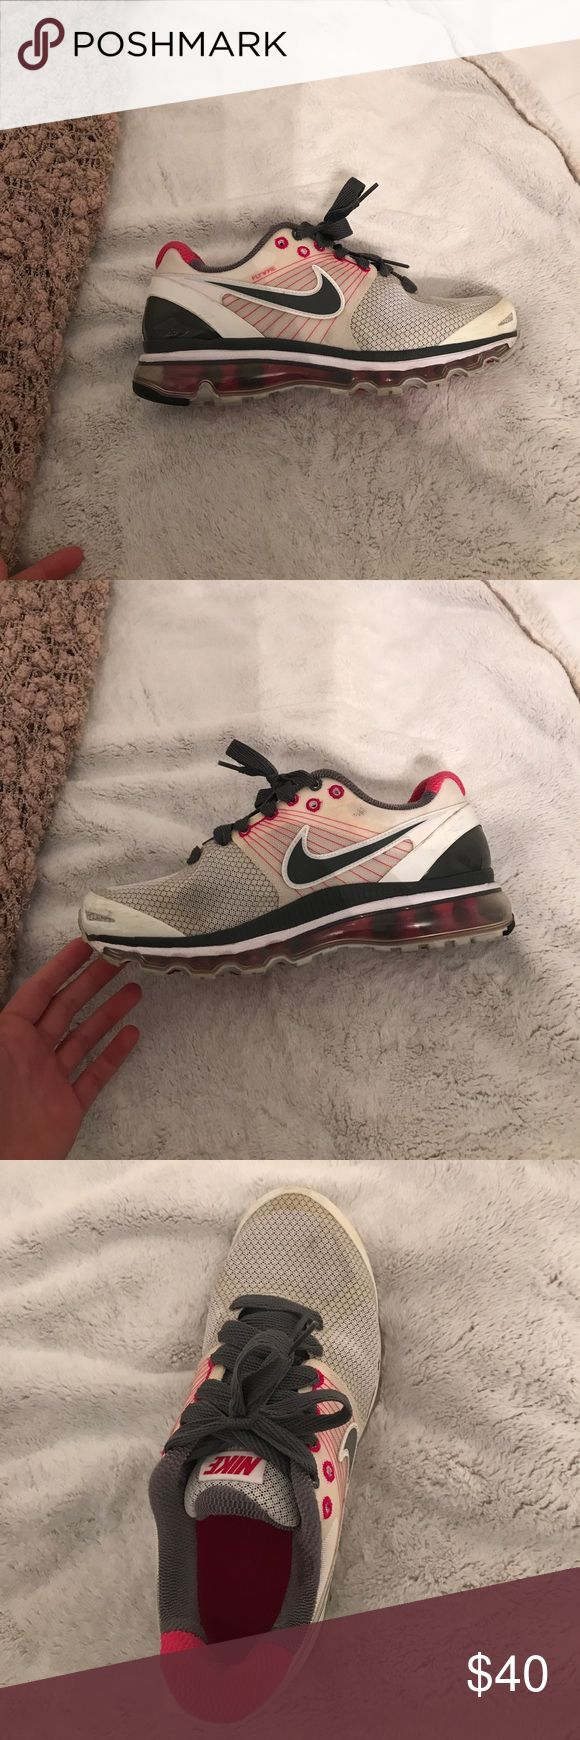 Pink and white air max 360 These adorable pink, white and grey air max 360's are comfy and very cute. They are in really good condition. They have some scuffing in the toes. They are perfect for both working out and athlesure. Nike Shoes Sneakers